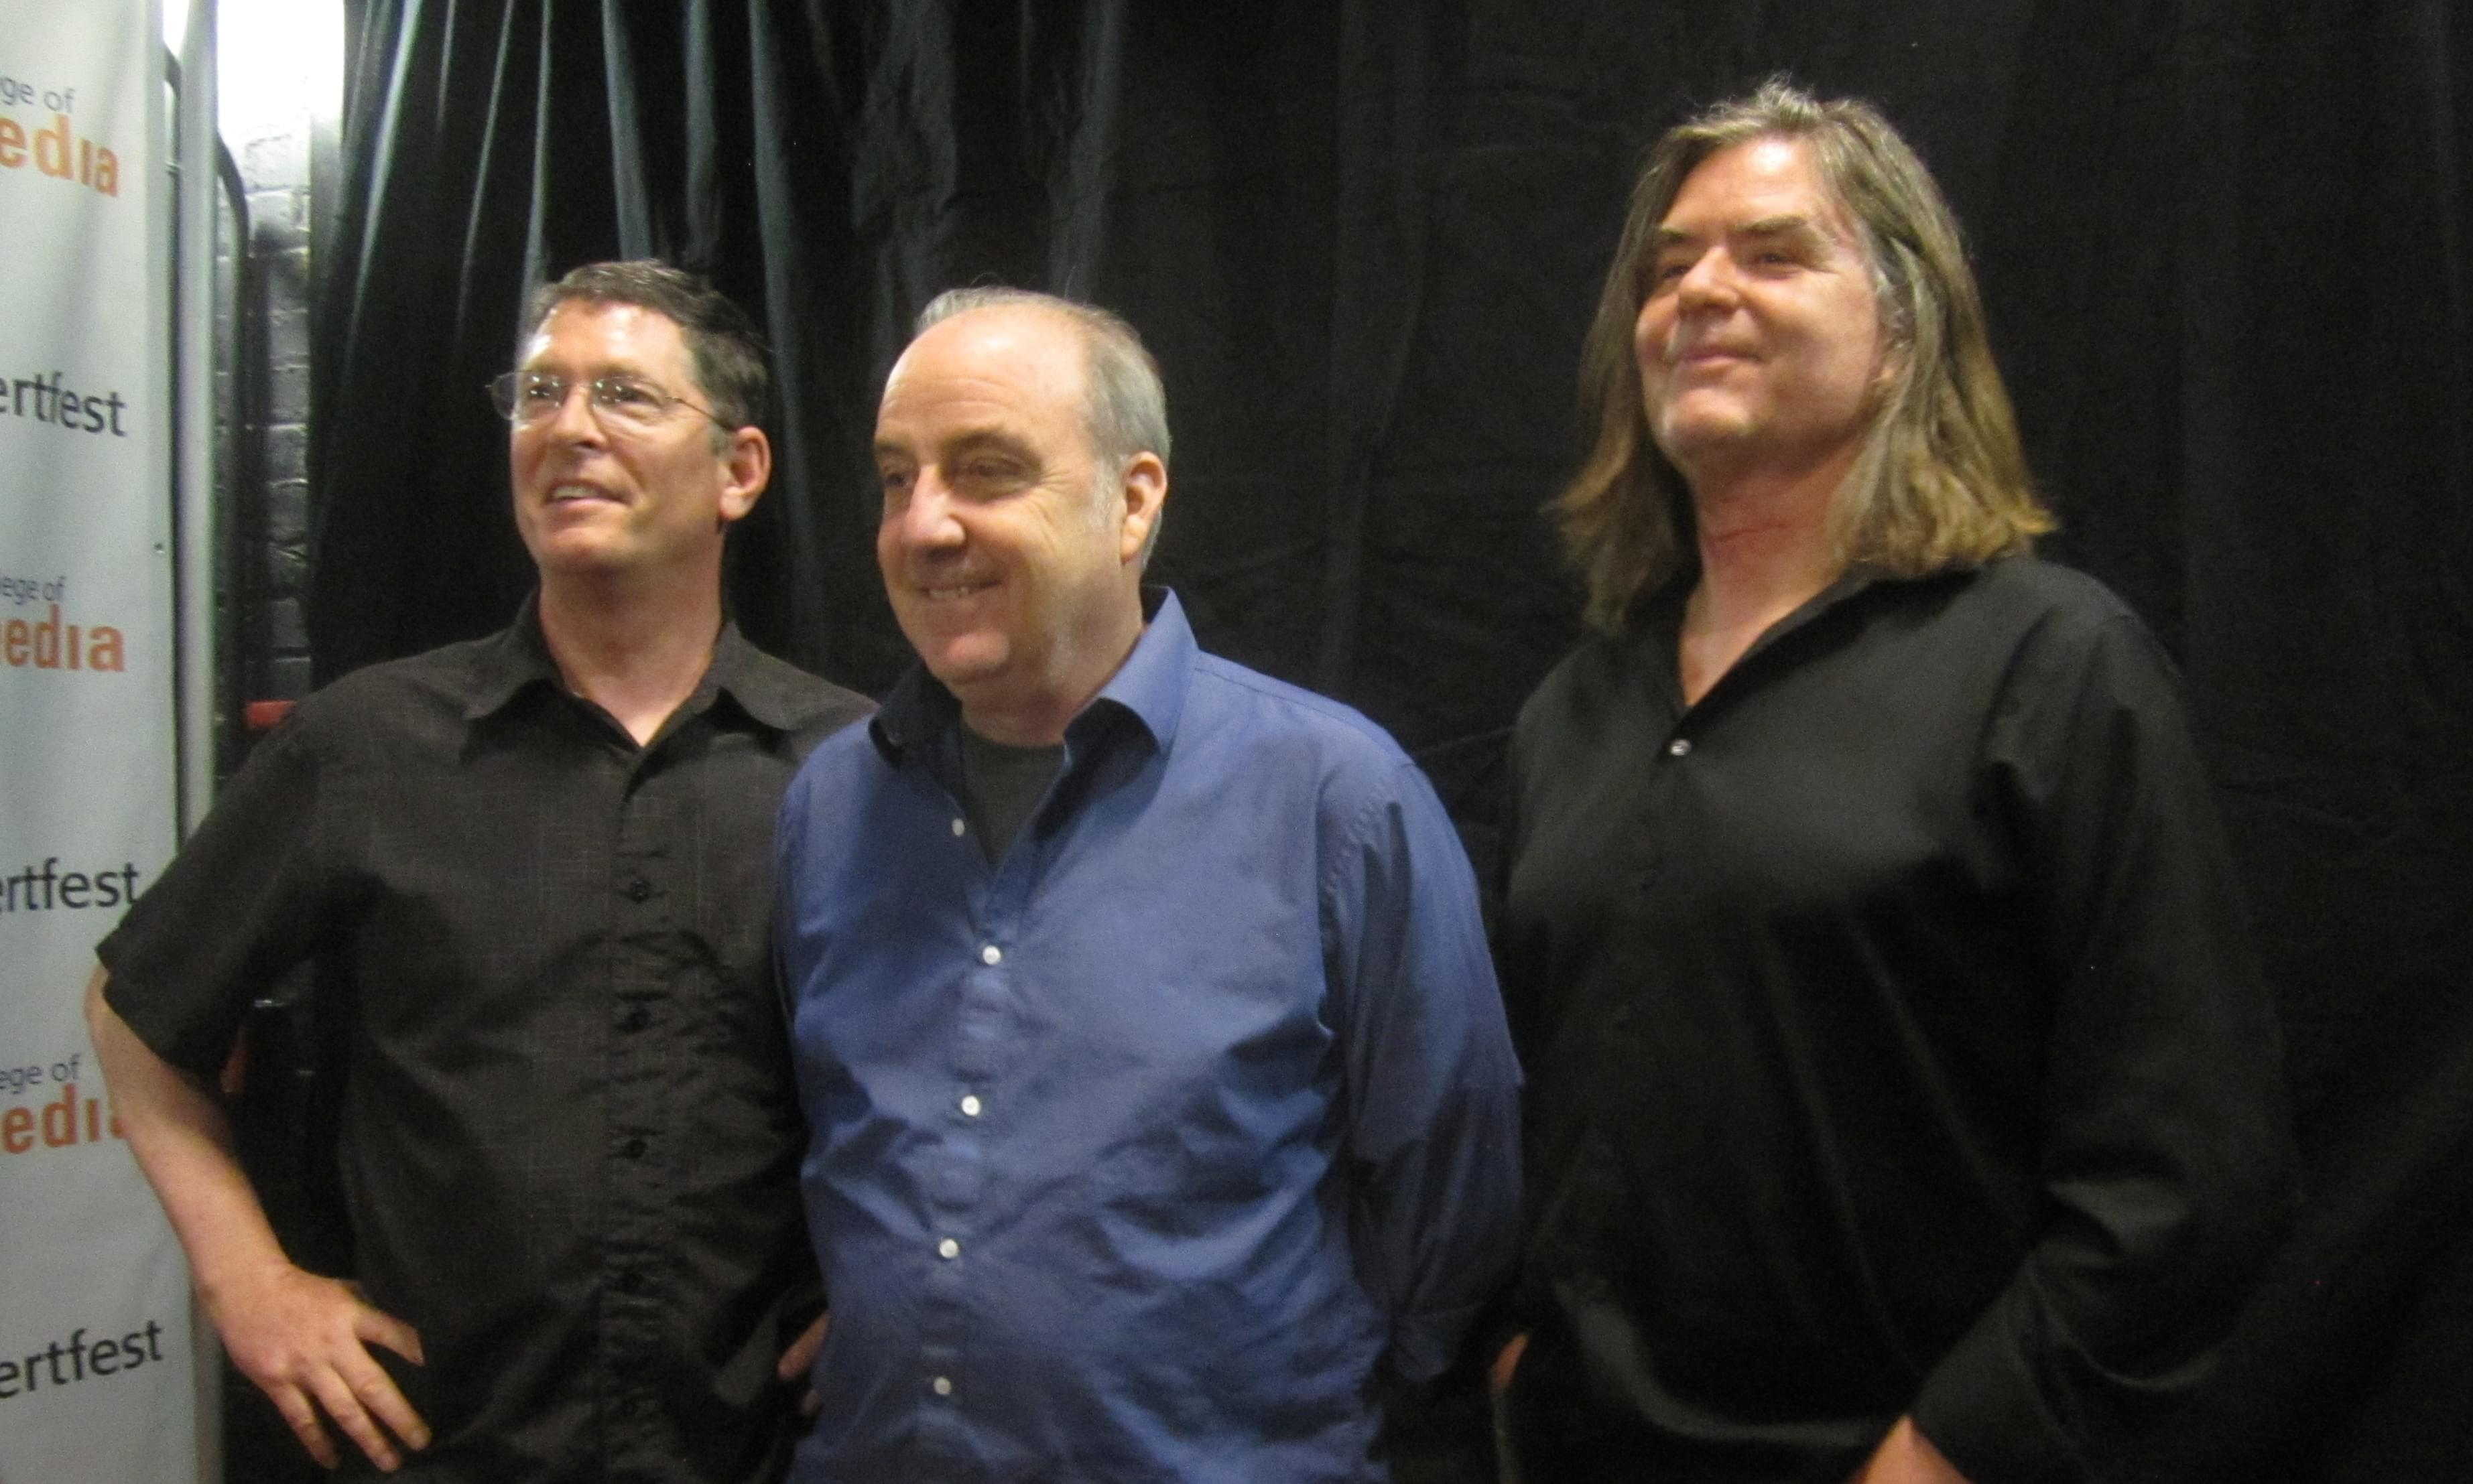 Alloy Orchestra members Terry Donahue, Ken Winokur and Roger C. Miller.